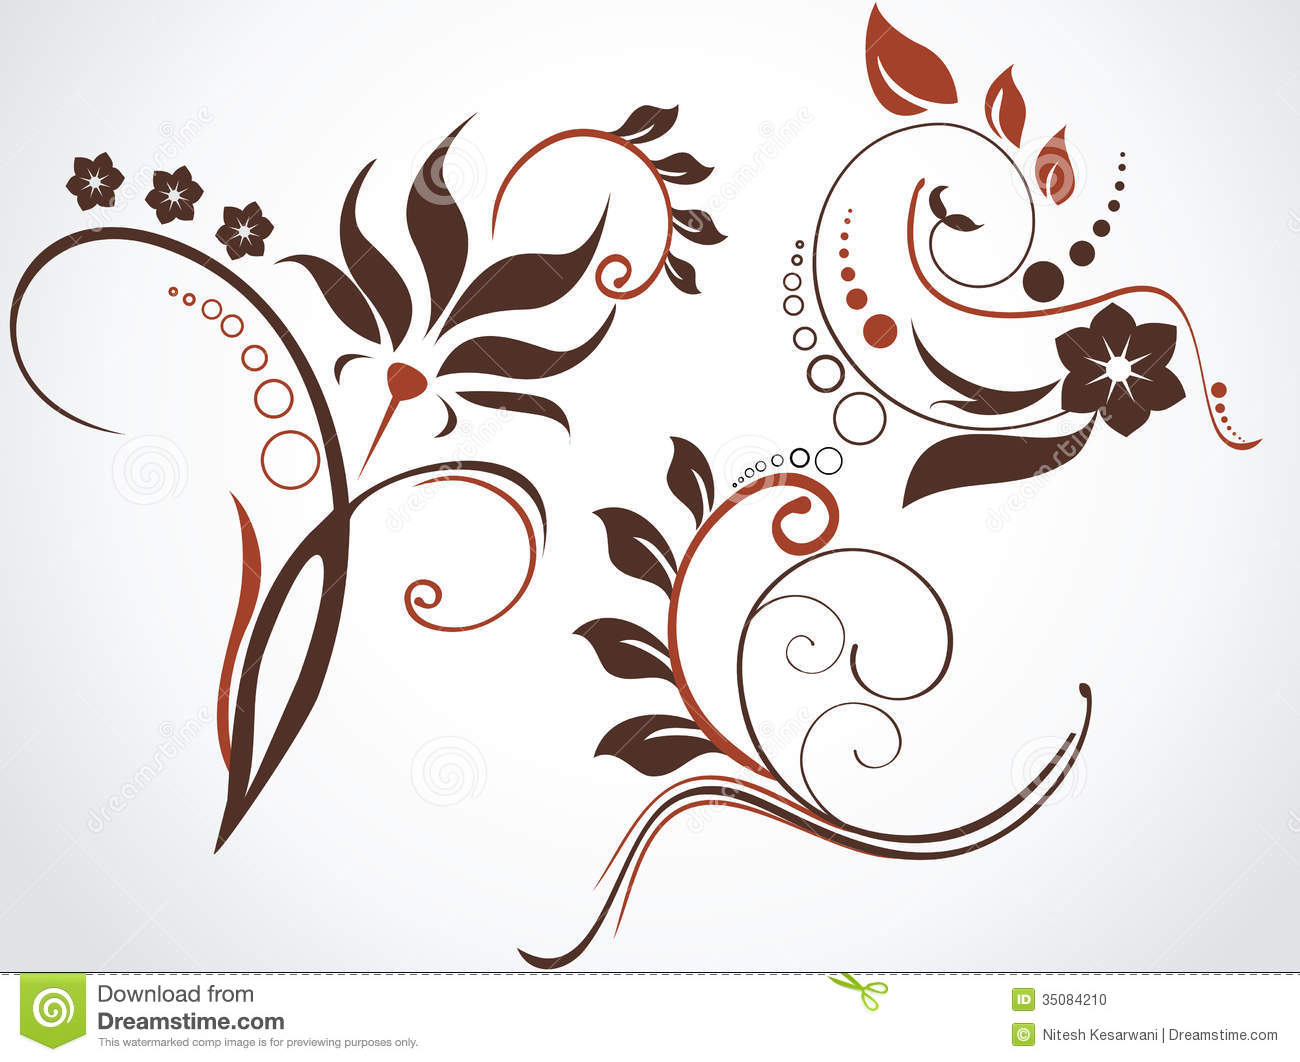 Floral Decorations floral patterns and decorations. stock photo - image: 35084210